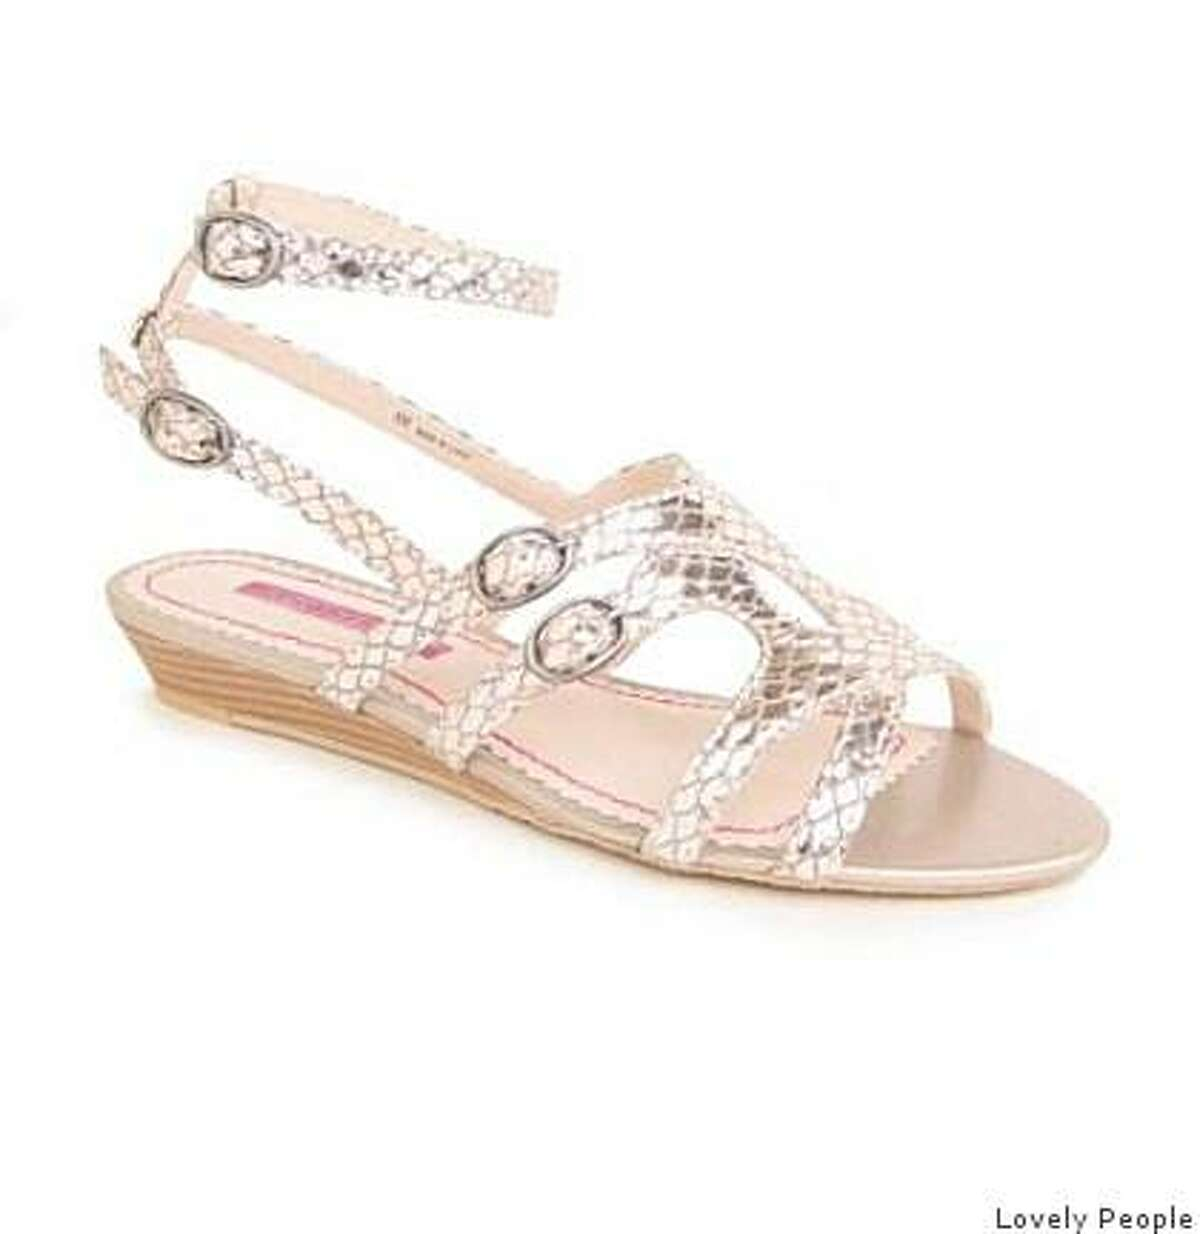 The Gilda sandal by Lovely People is $85.